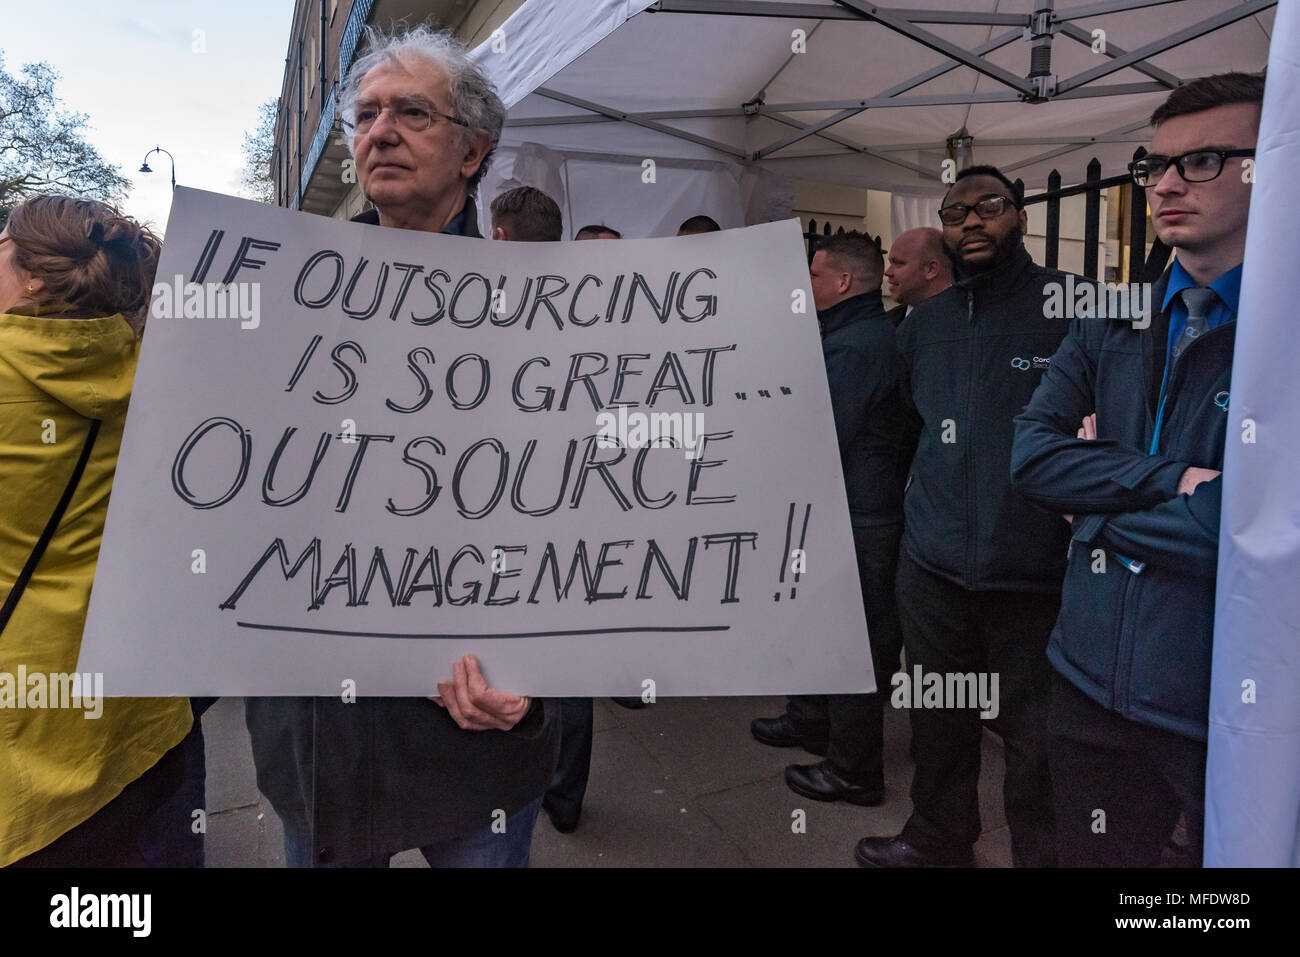 London, UK. 25th April 2018. A man holds a poster 'If Outsourcing is so great... Outsource Management!!' at the rally by workers, students and other trade unionists supporting over 100 cleaners, porters, security officers, receptionists, gardeners, post room staff and audiovisual staff in the Independent Workers Union of Great Britain - IWGB at the end of the first day of a two day strike at the University of London central administration. The workers, employed by various outsourcing companies are demanding to be directly employed by the University, and receive the same conditions and benefits - Stock Image